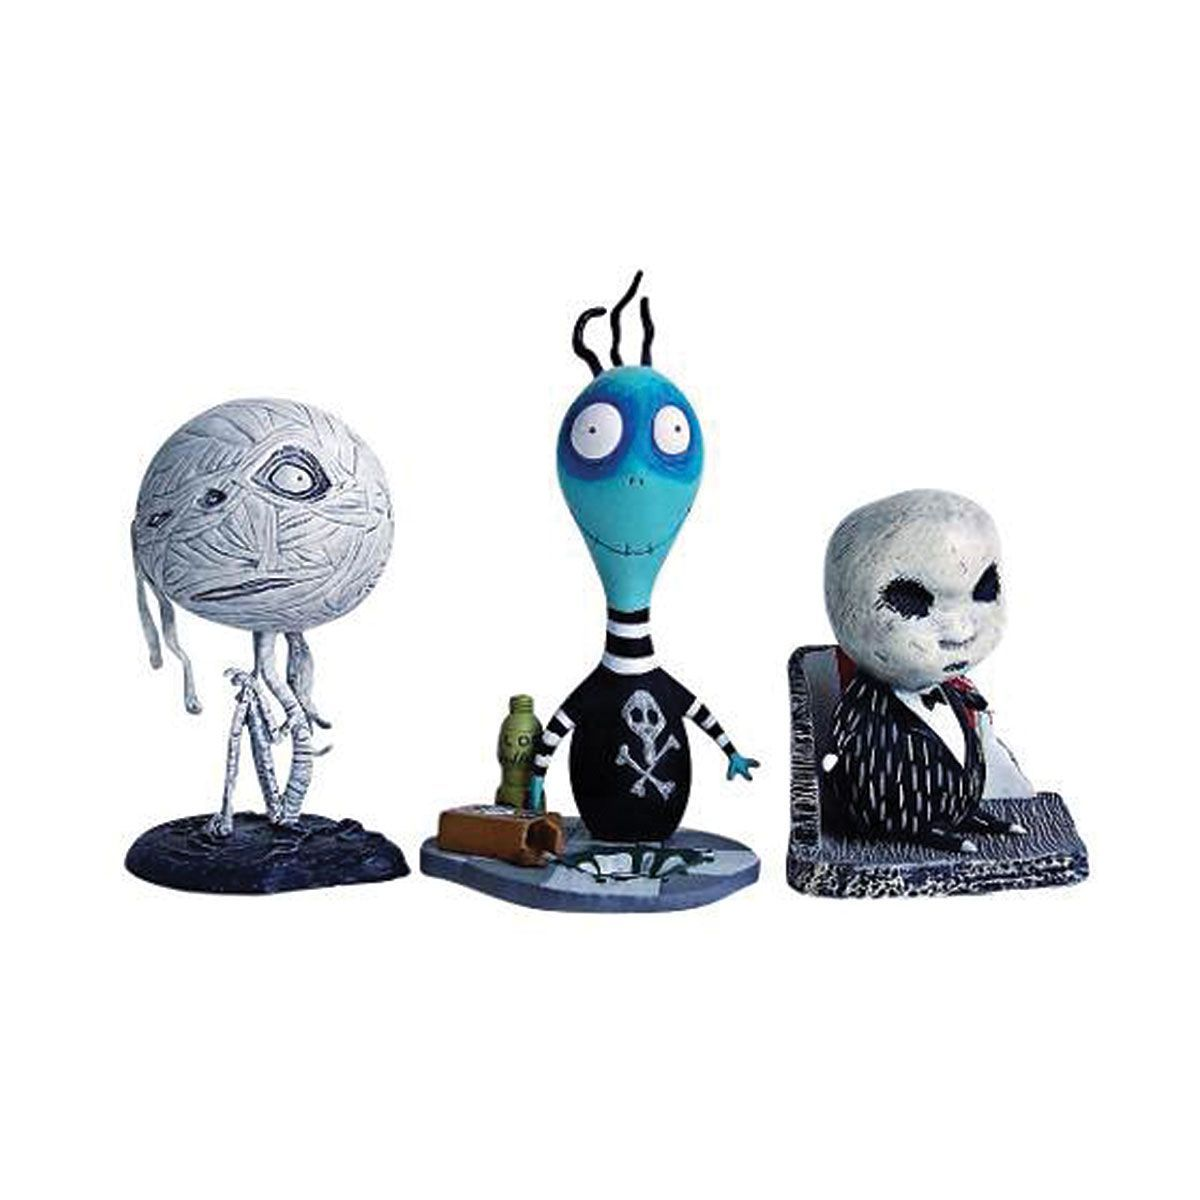 TOXIC BOY - TIM BURTON SET 2 - DARK HORSE Deluxe